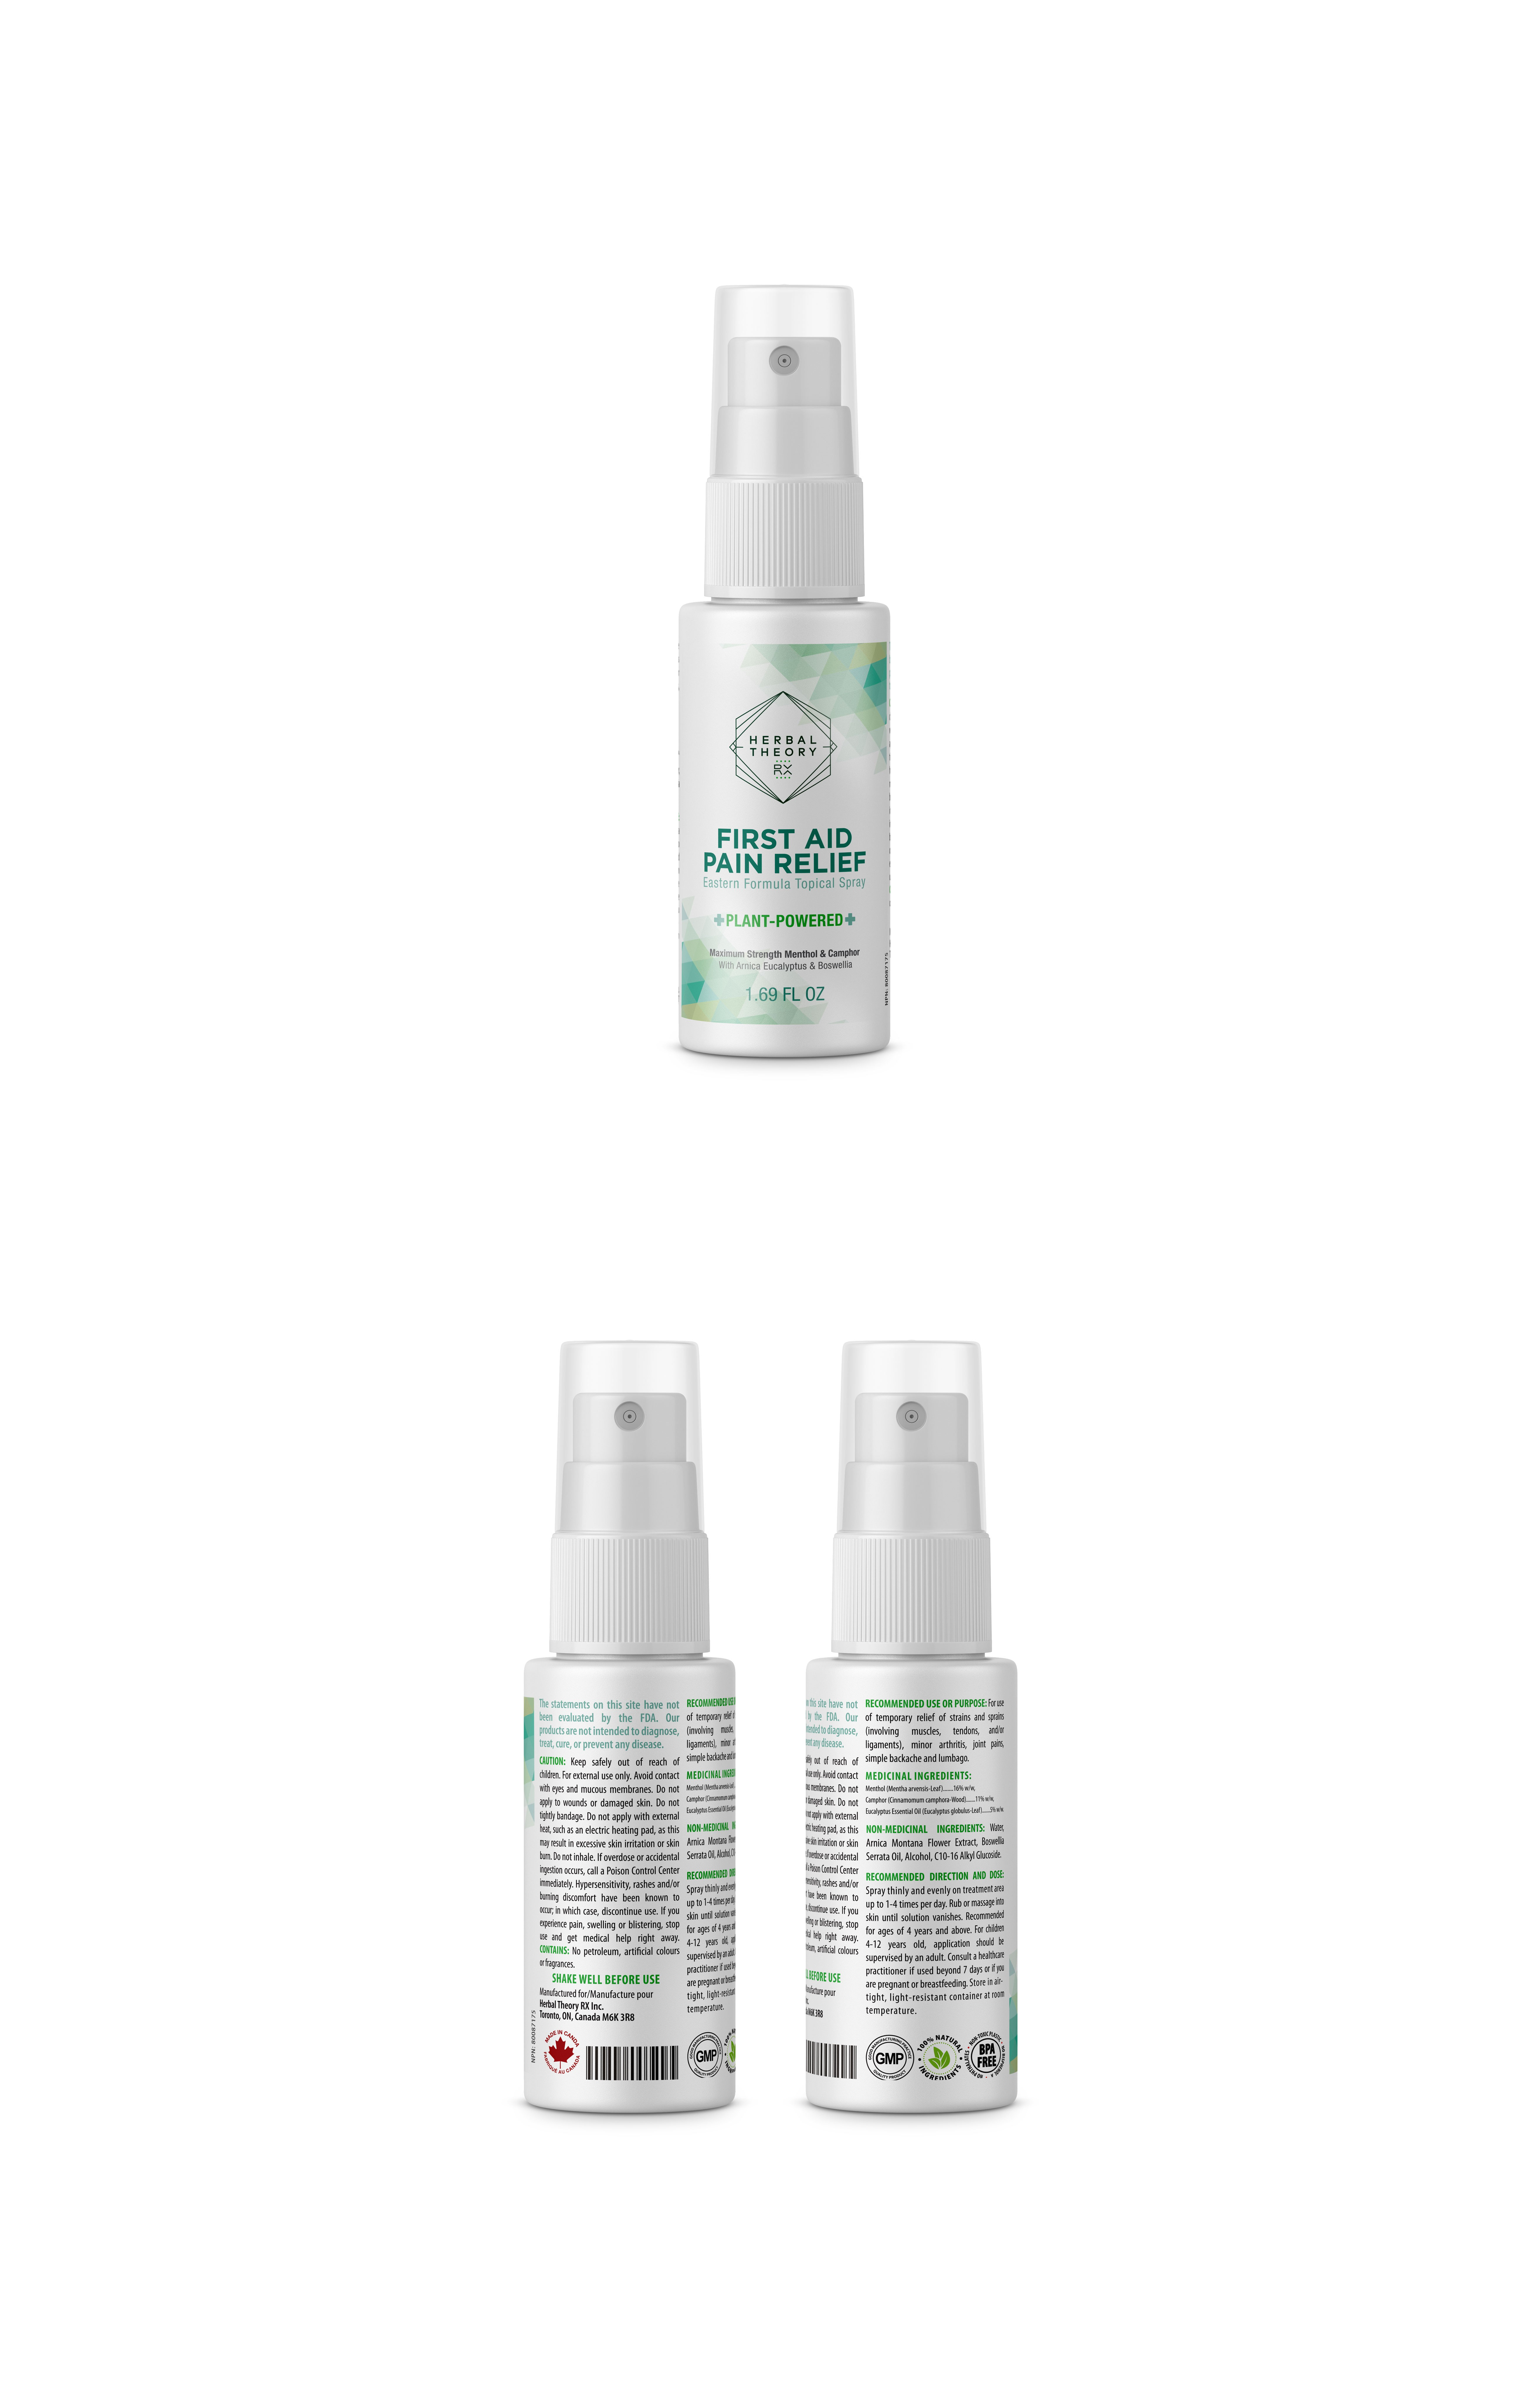 Modern Creative Design for 100% Natural First Aid Pain Relief Spray! #PLANTPOWERED